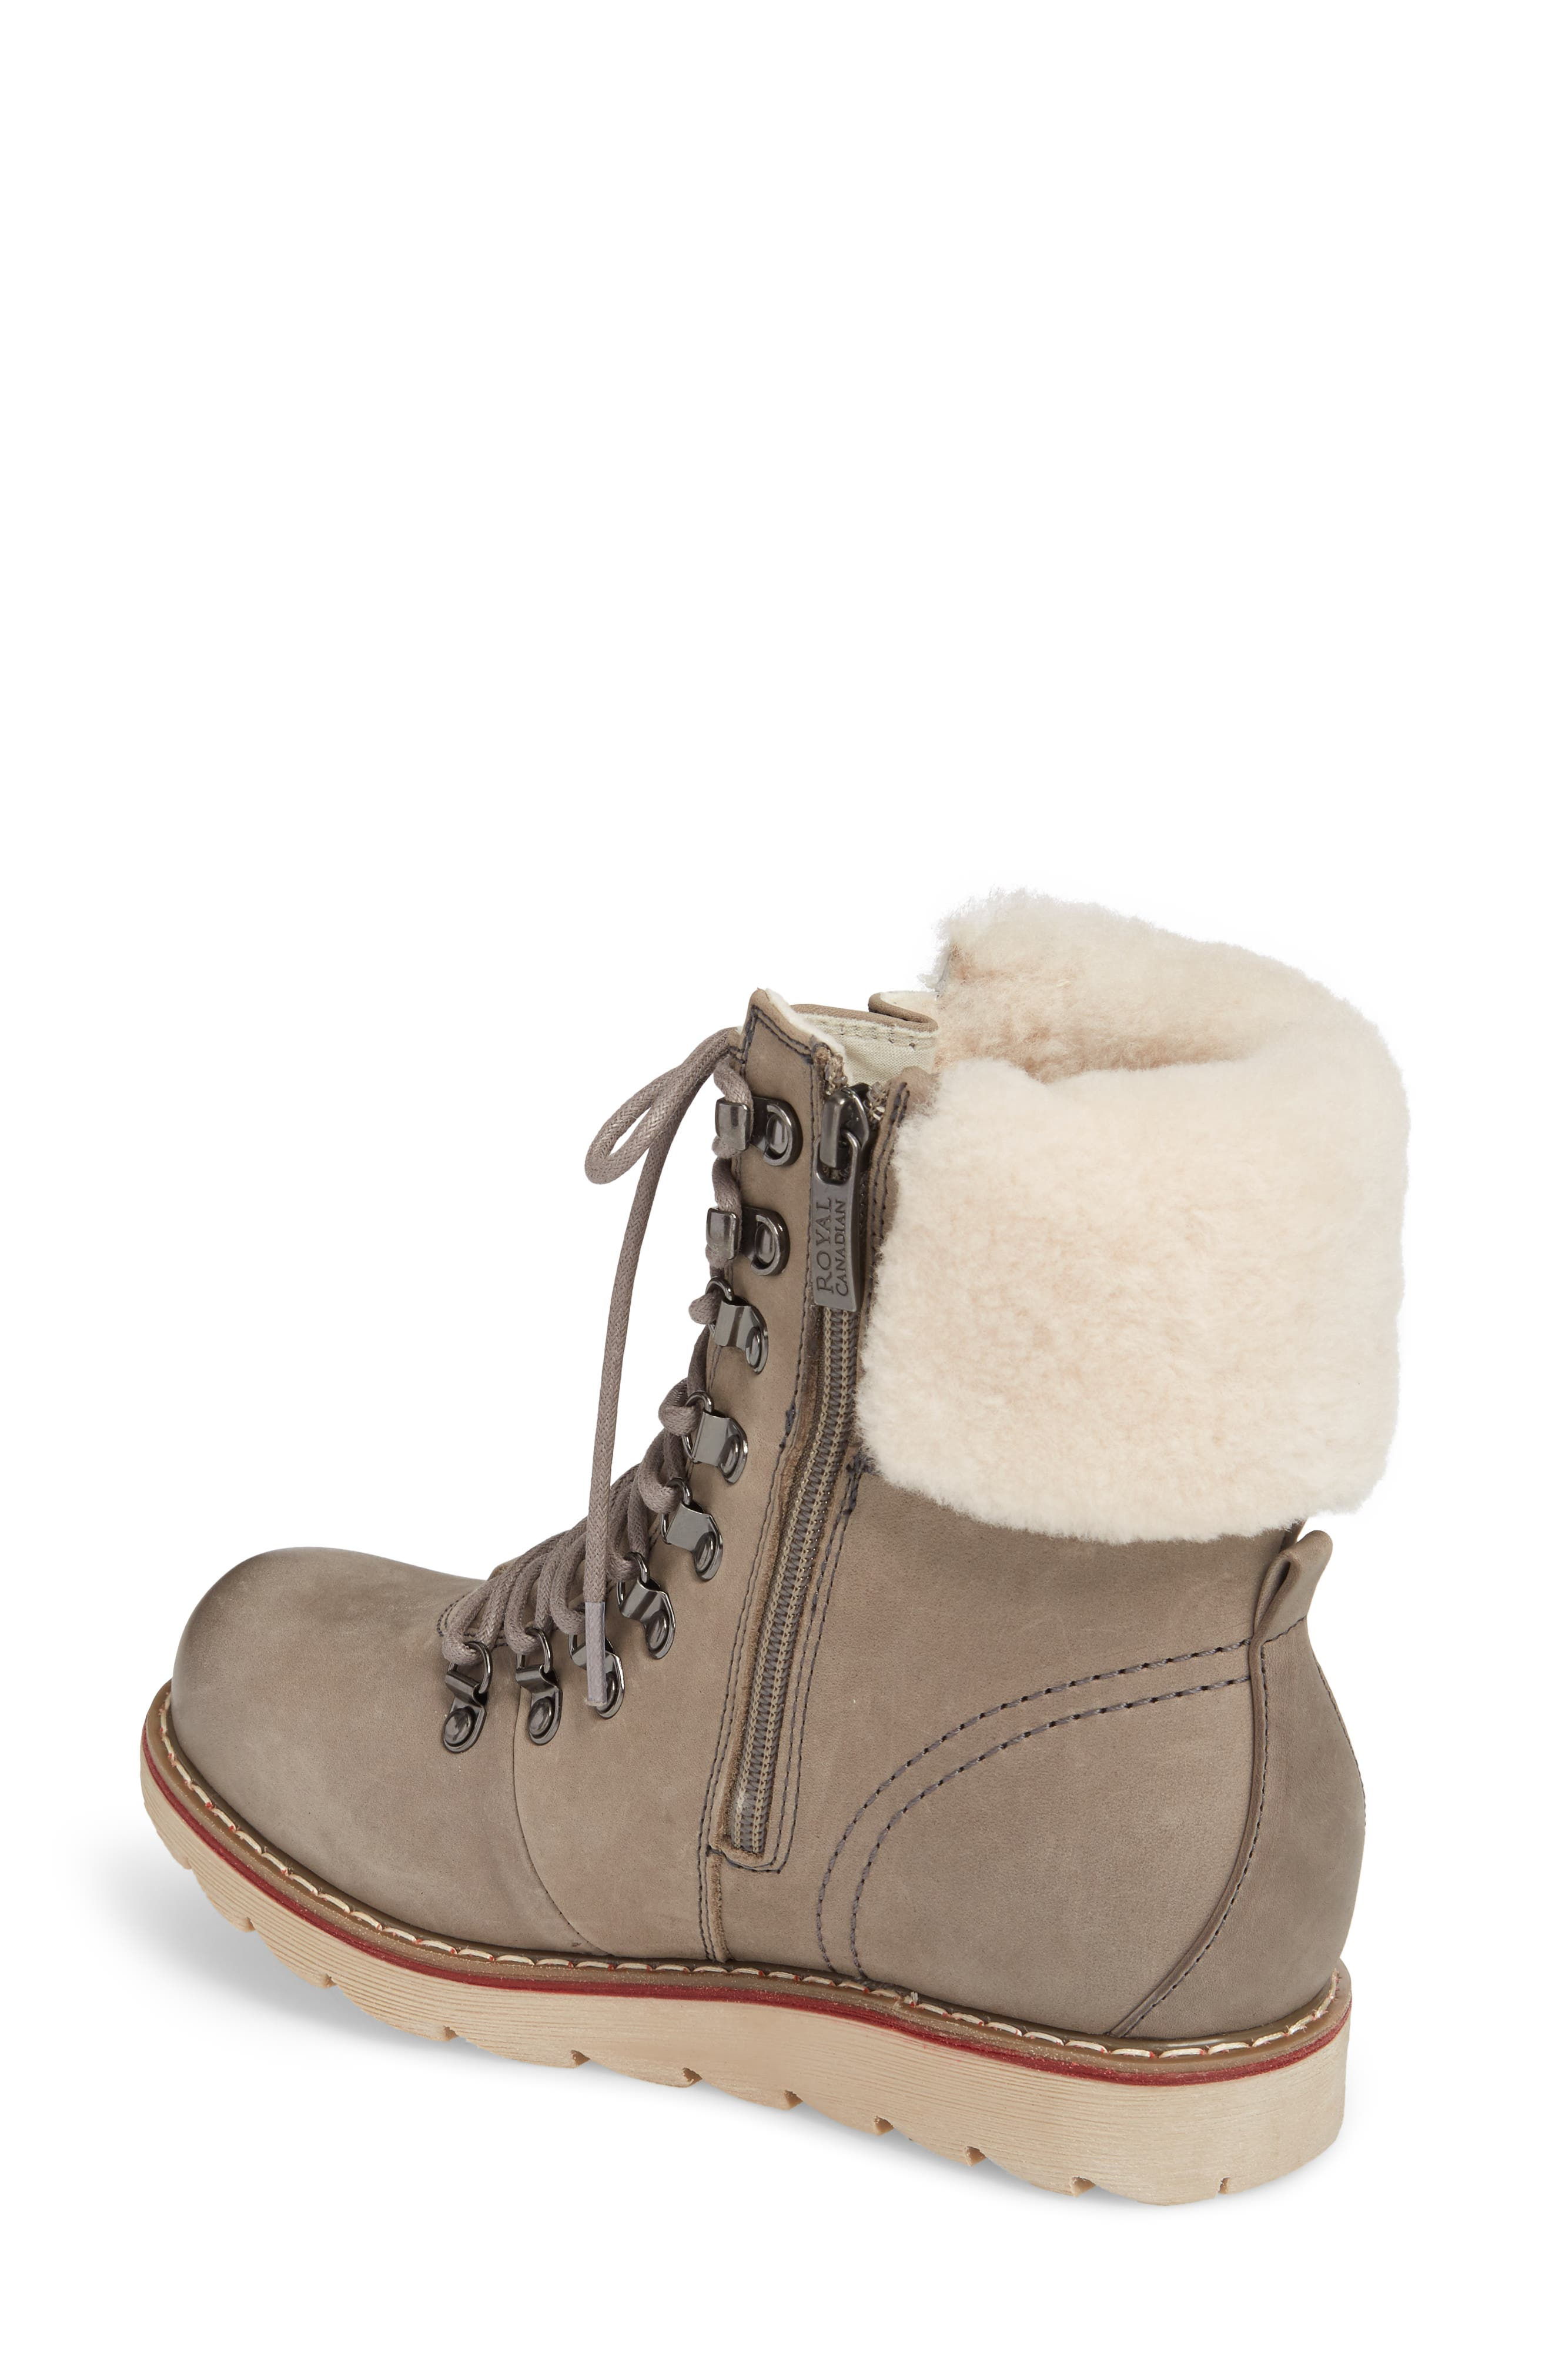 Lethbridge Waterproof Snow Boot with Genuine Shearling Cuff,                             Alternate thumbnail 2, color,                             Grey Leather